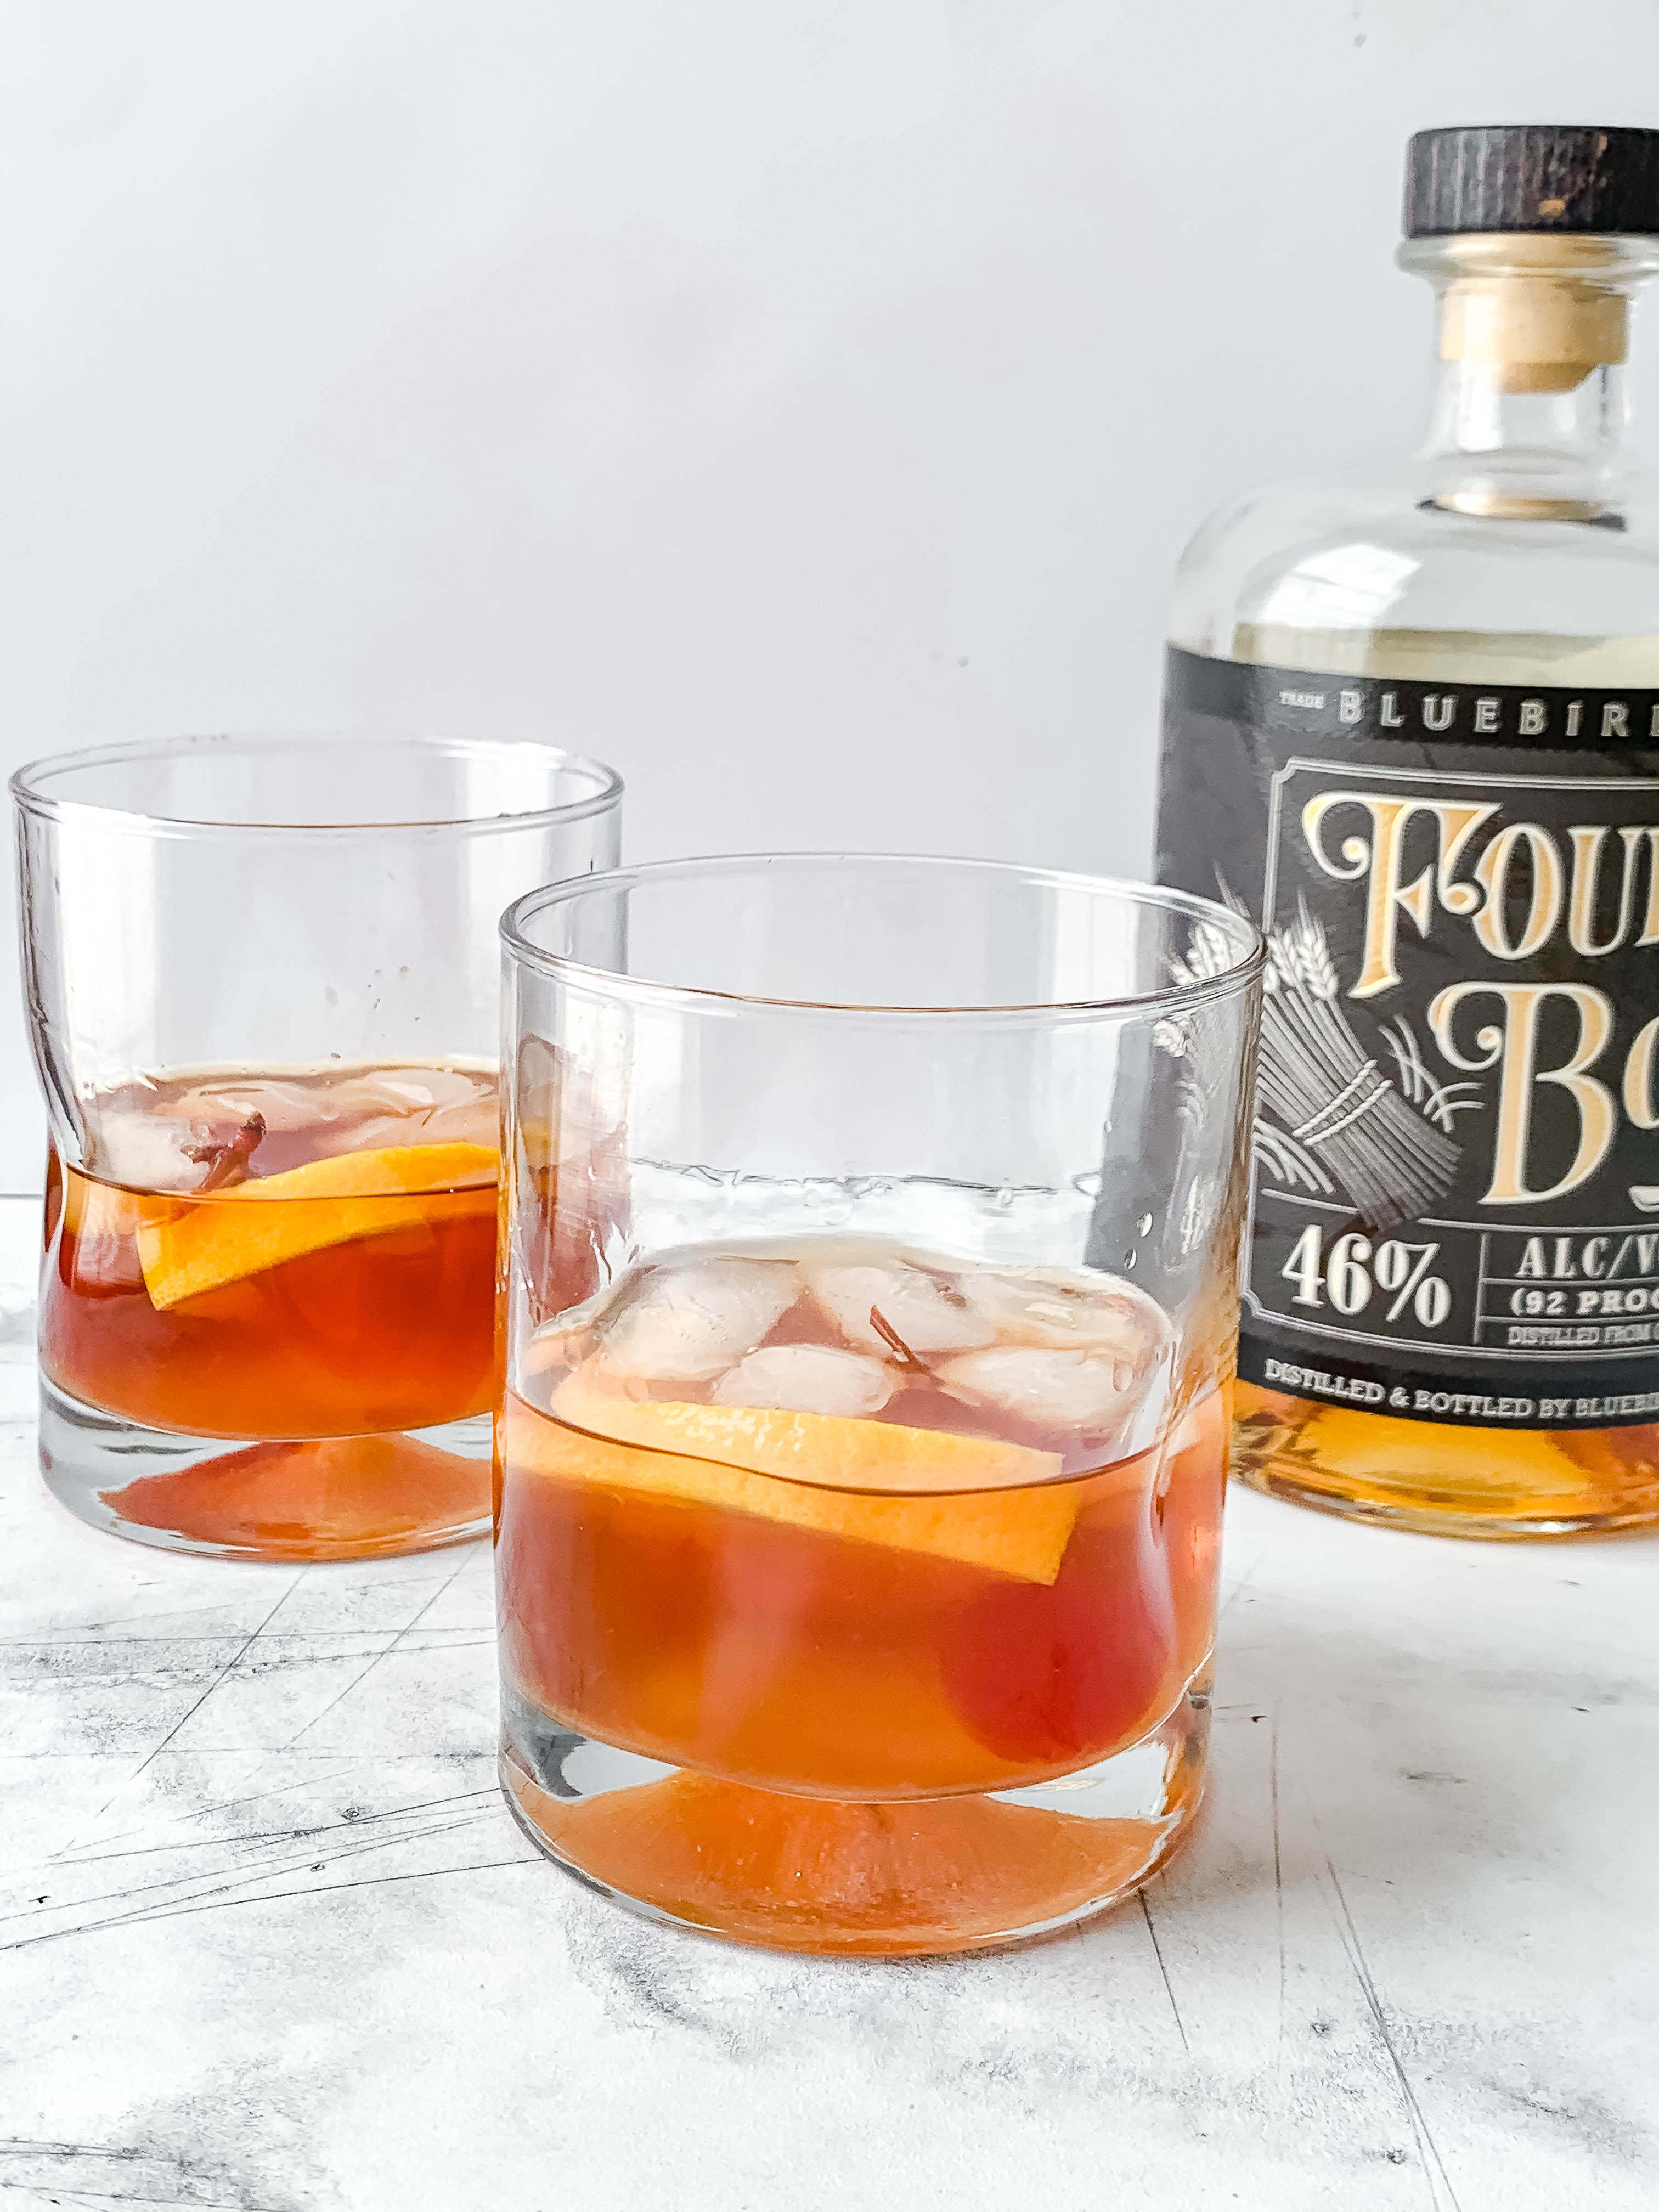 My Family's Signature Cocktail: The Old Fashioned